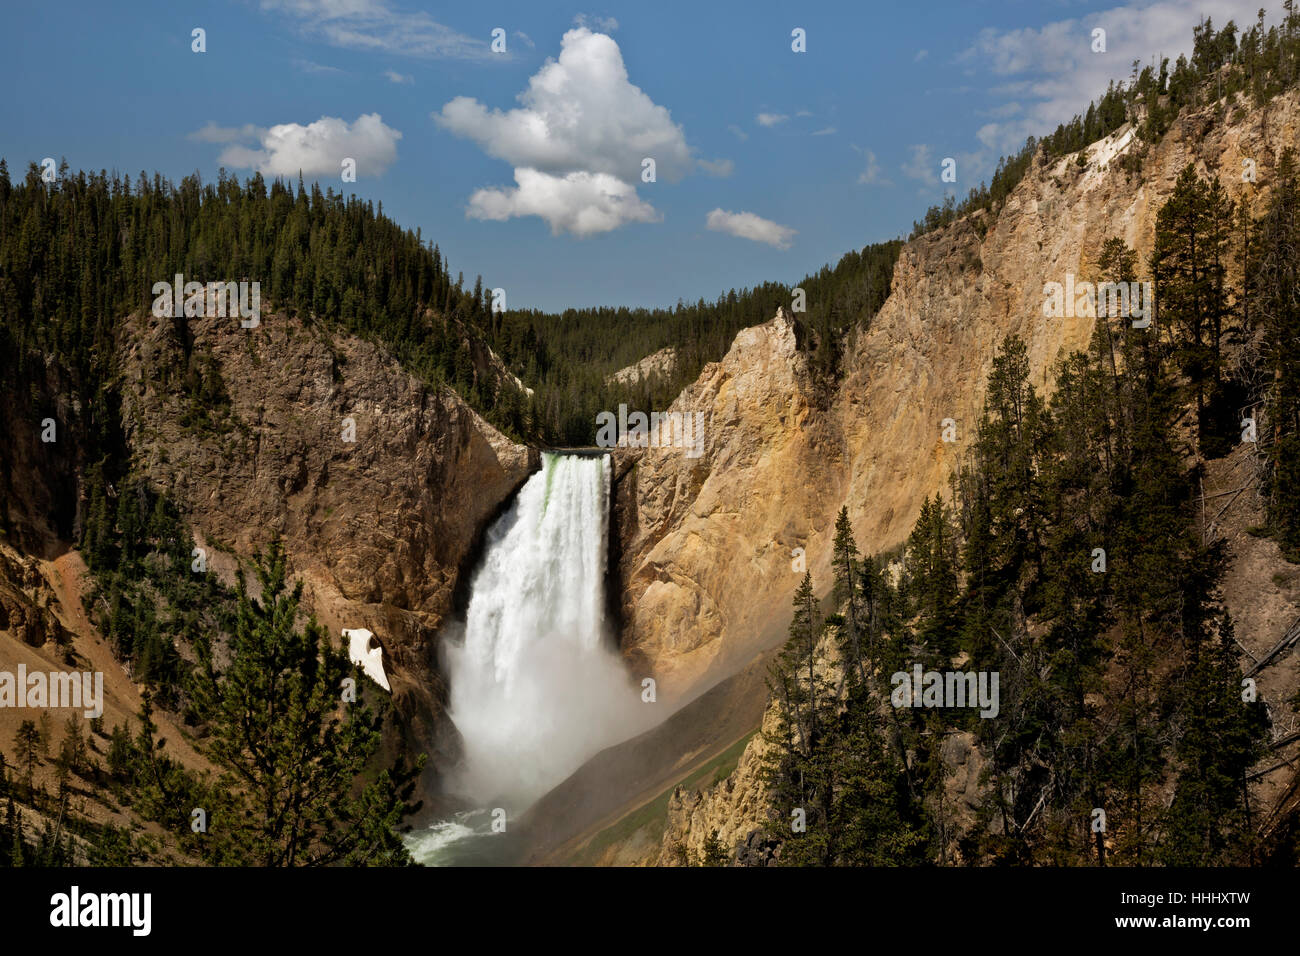 WY02099-00...WASHINGTON - Lower Falls dans le Grand Canyon de la Yellowstone River dans le Parc National de Yellowstone. Photo Stock